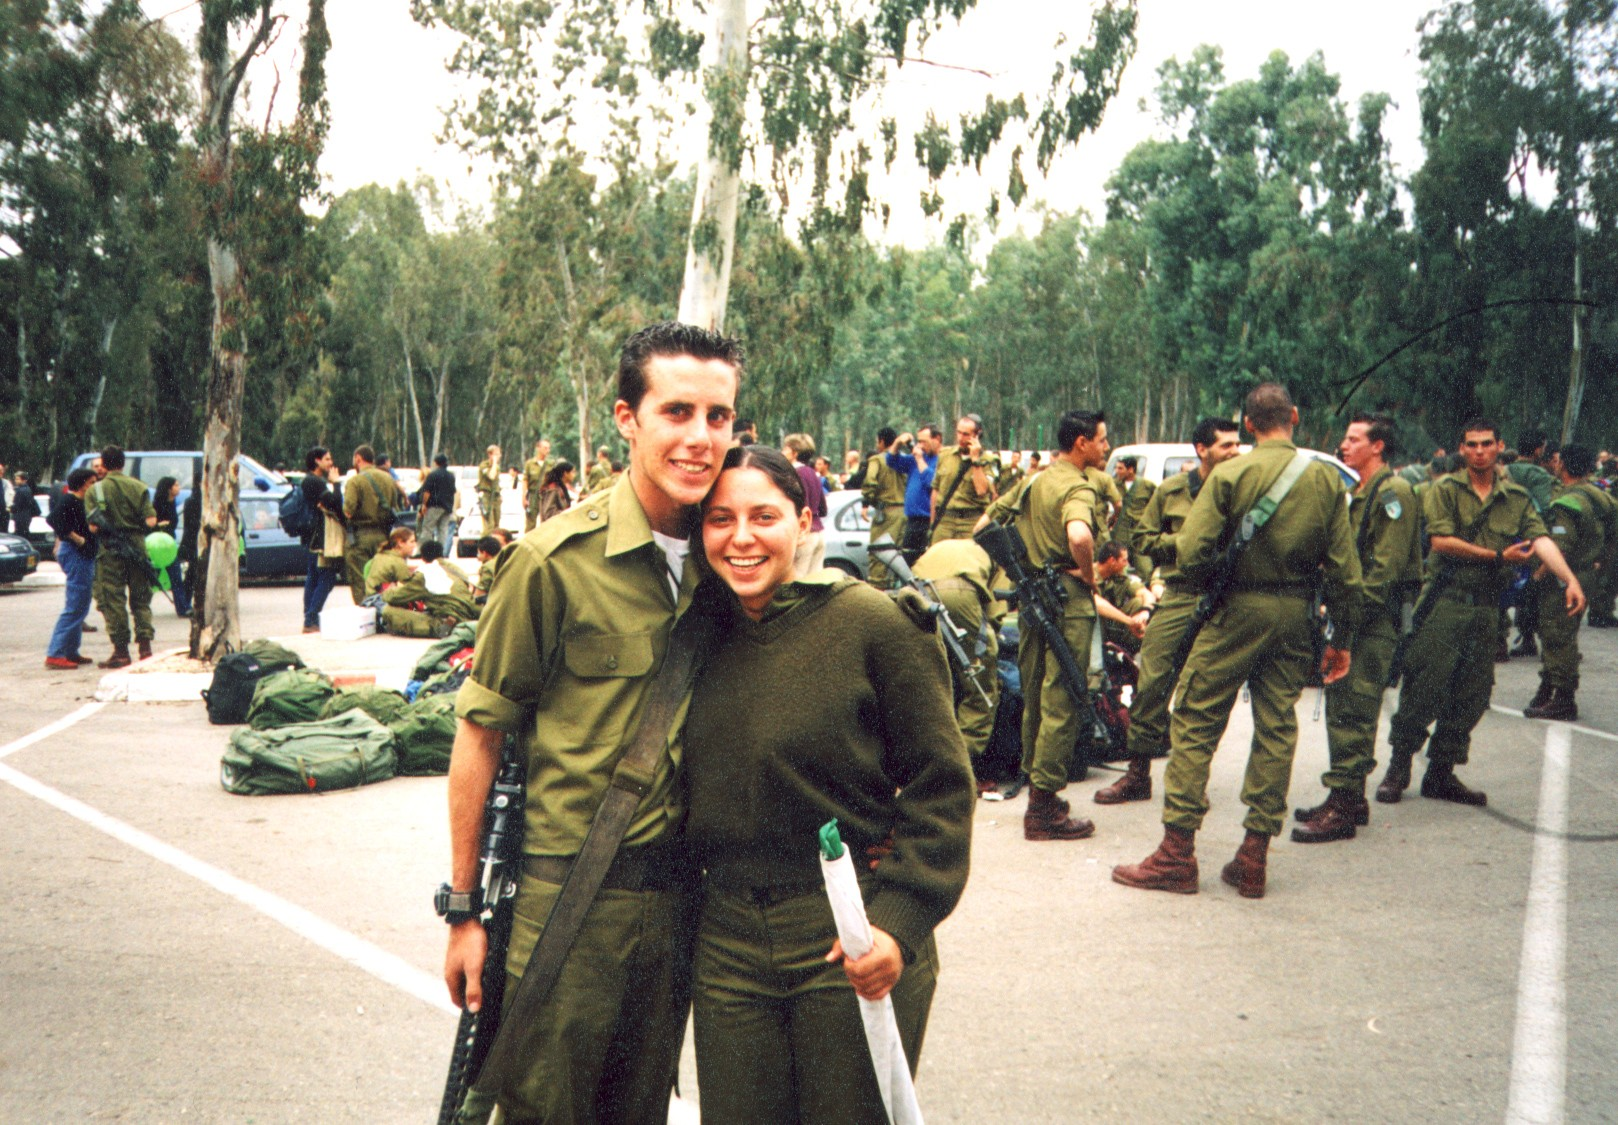 Garinim Israel Young People IDF Group